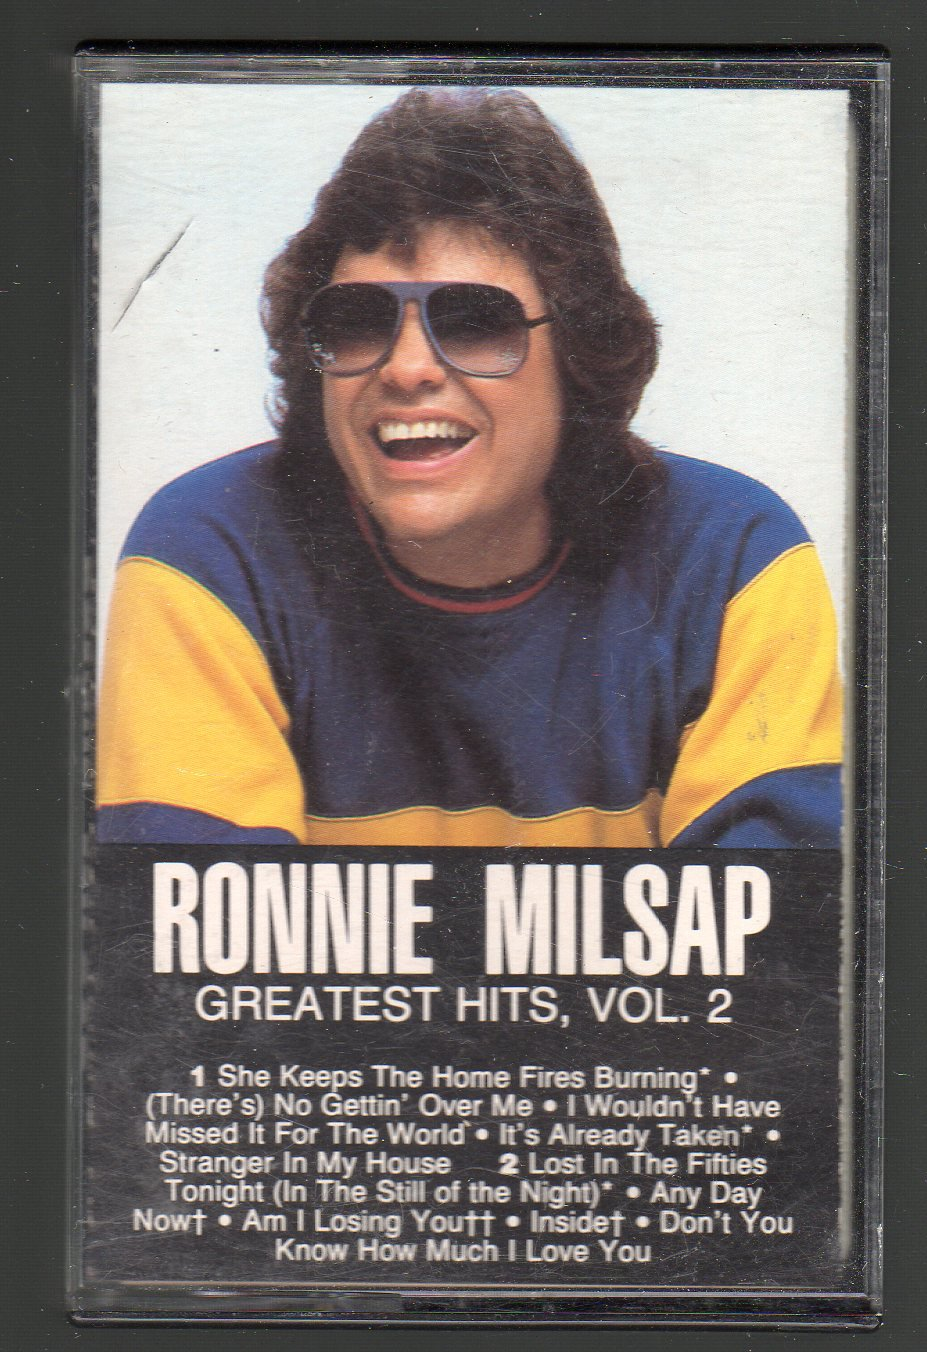 Ronnie Milsap - Greatest Hits Vol 2 SOLD Cassette Tape